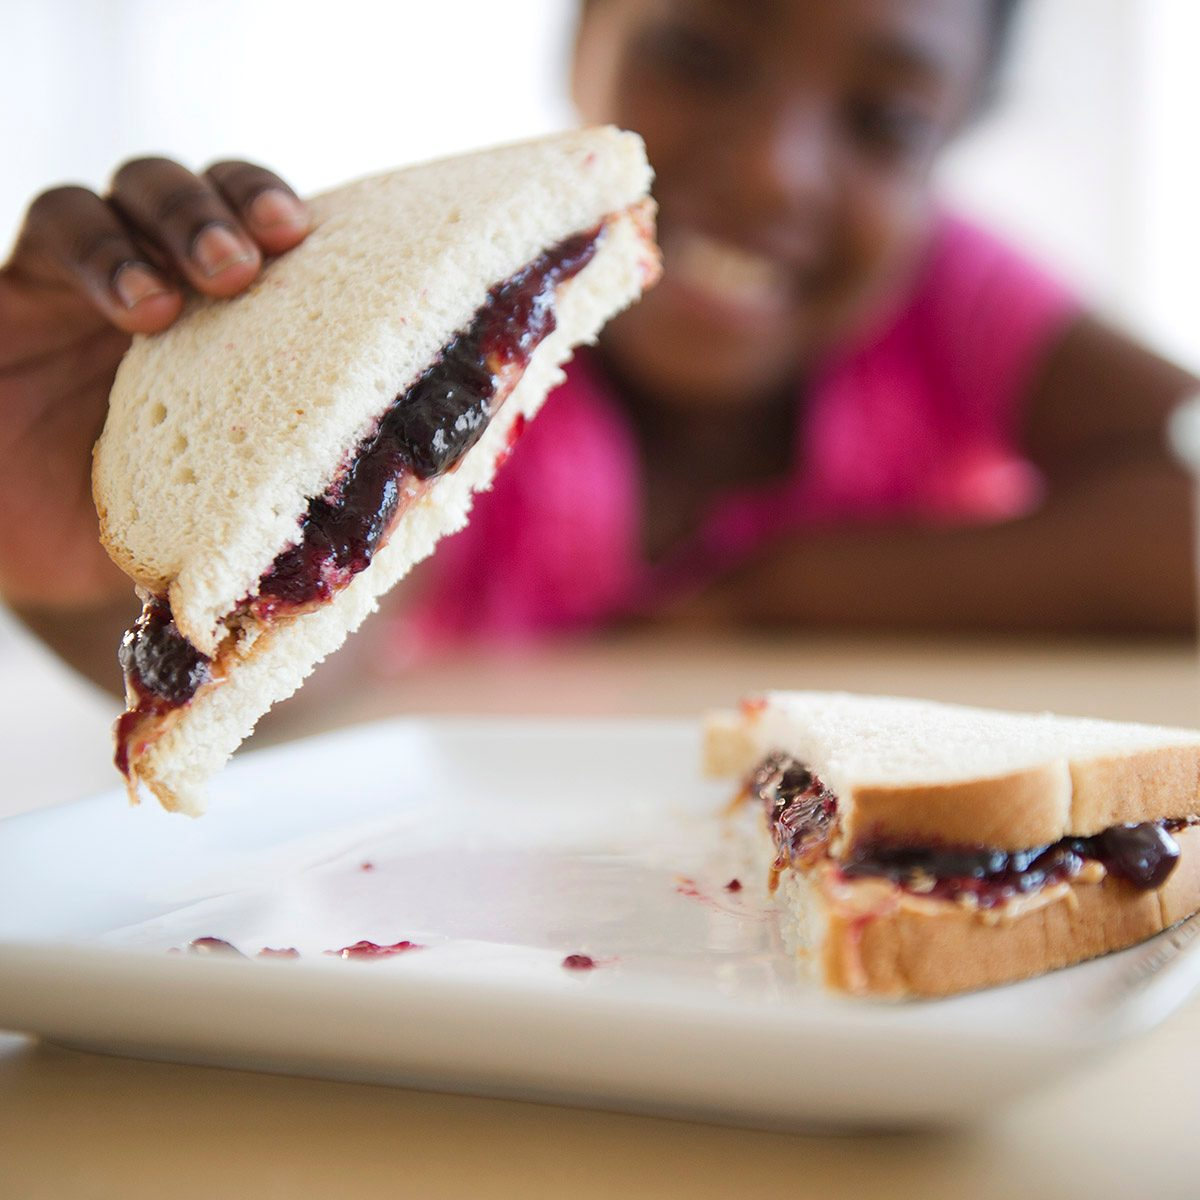 Girl eating peanut butter and jelly sandwich